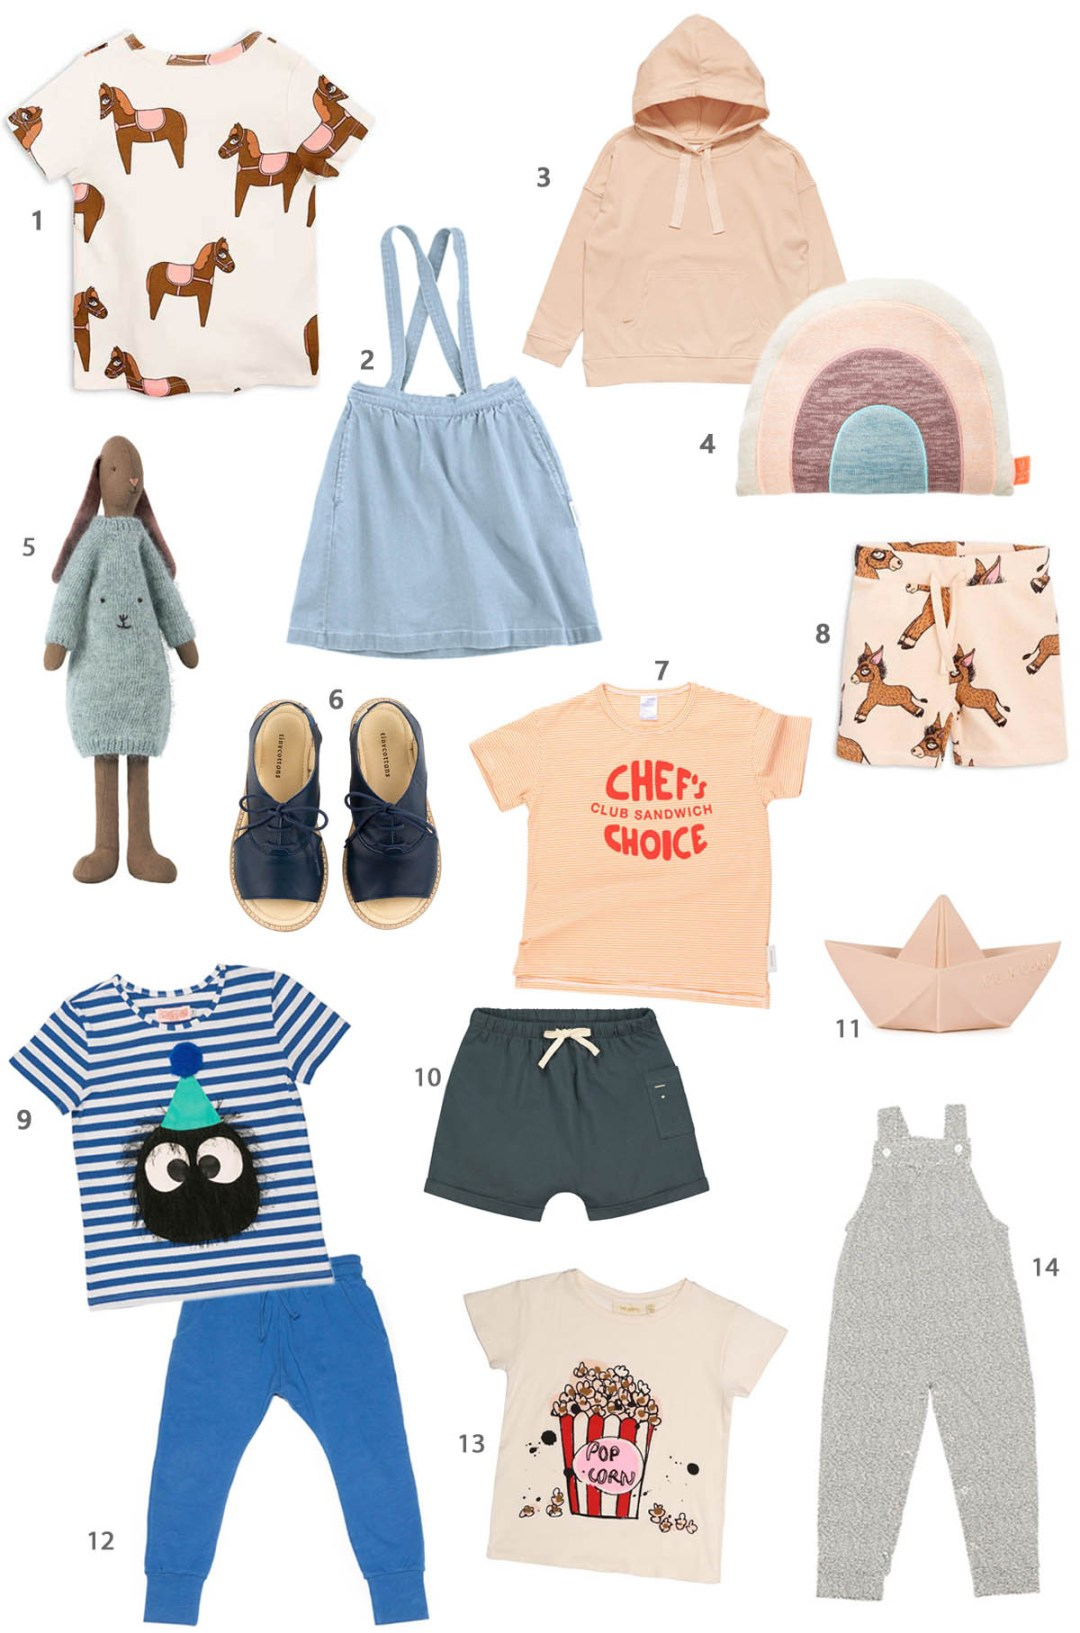 The spring collection 2018 for children from Stadtlandkind: Our favorites #kindermode #kidsfashion